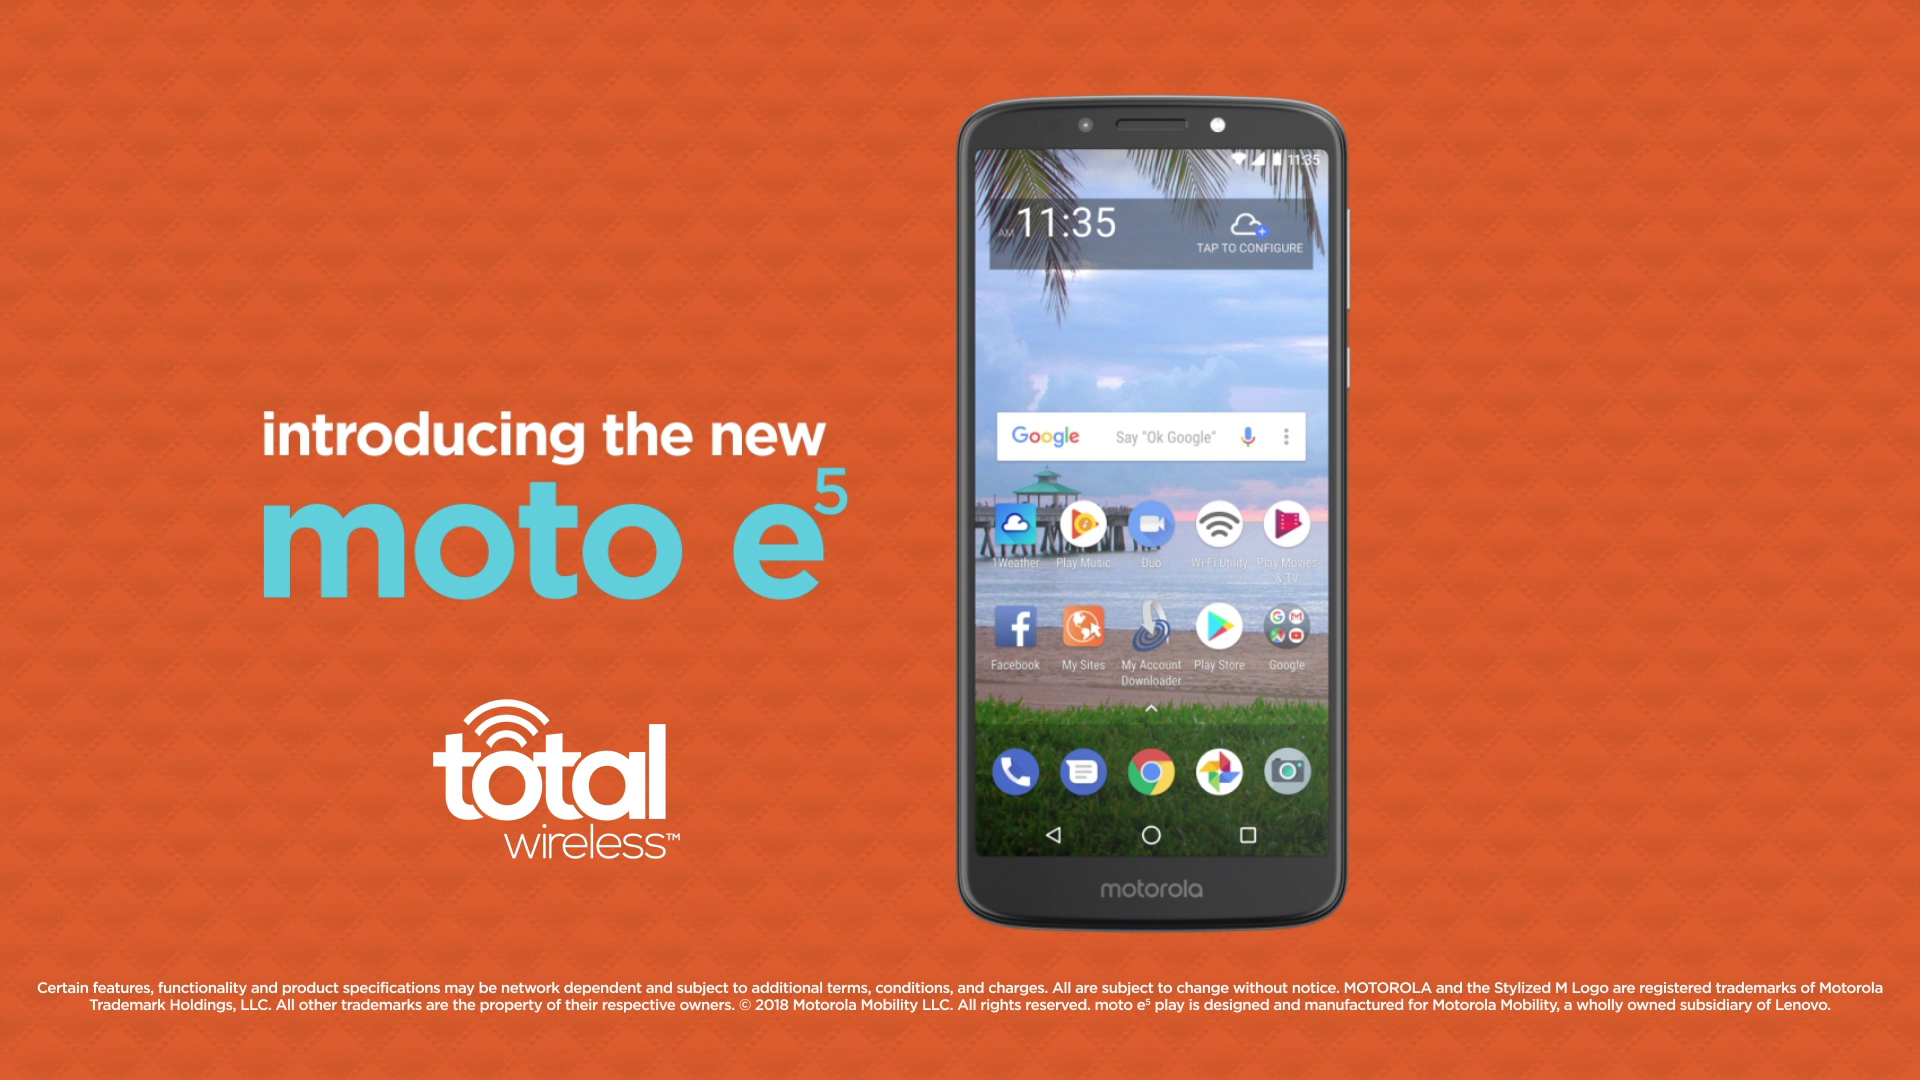 Total Wireless Motorola e5 Prepaid Smartphone